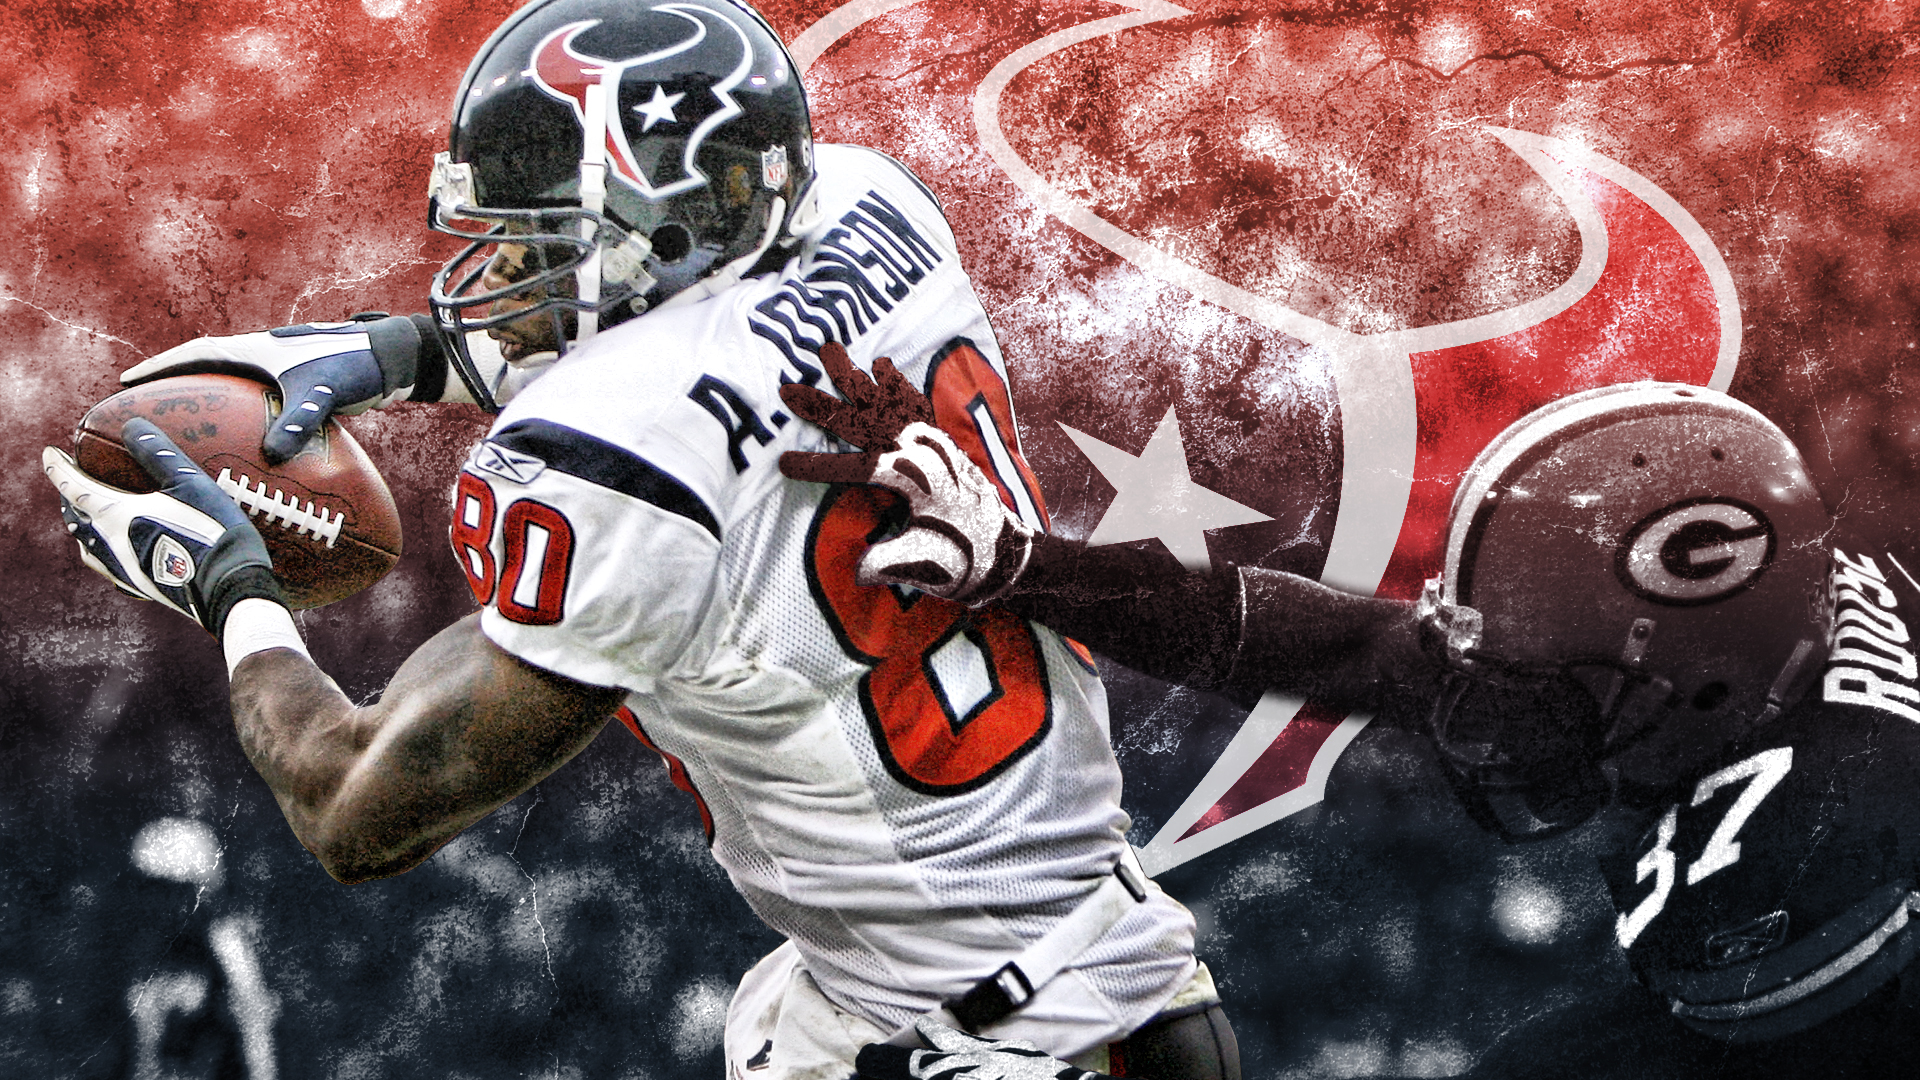 Houston Texans Nfl 1920x1080 Hd Images 1920x1080